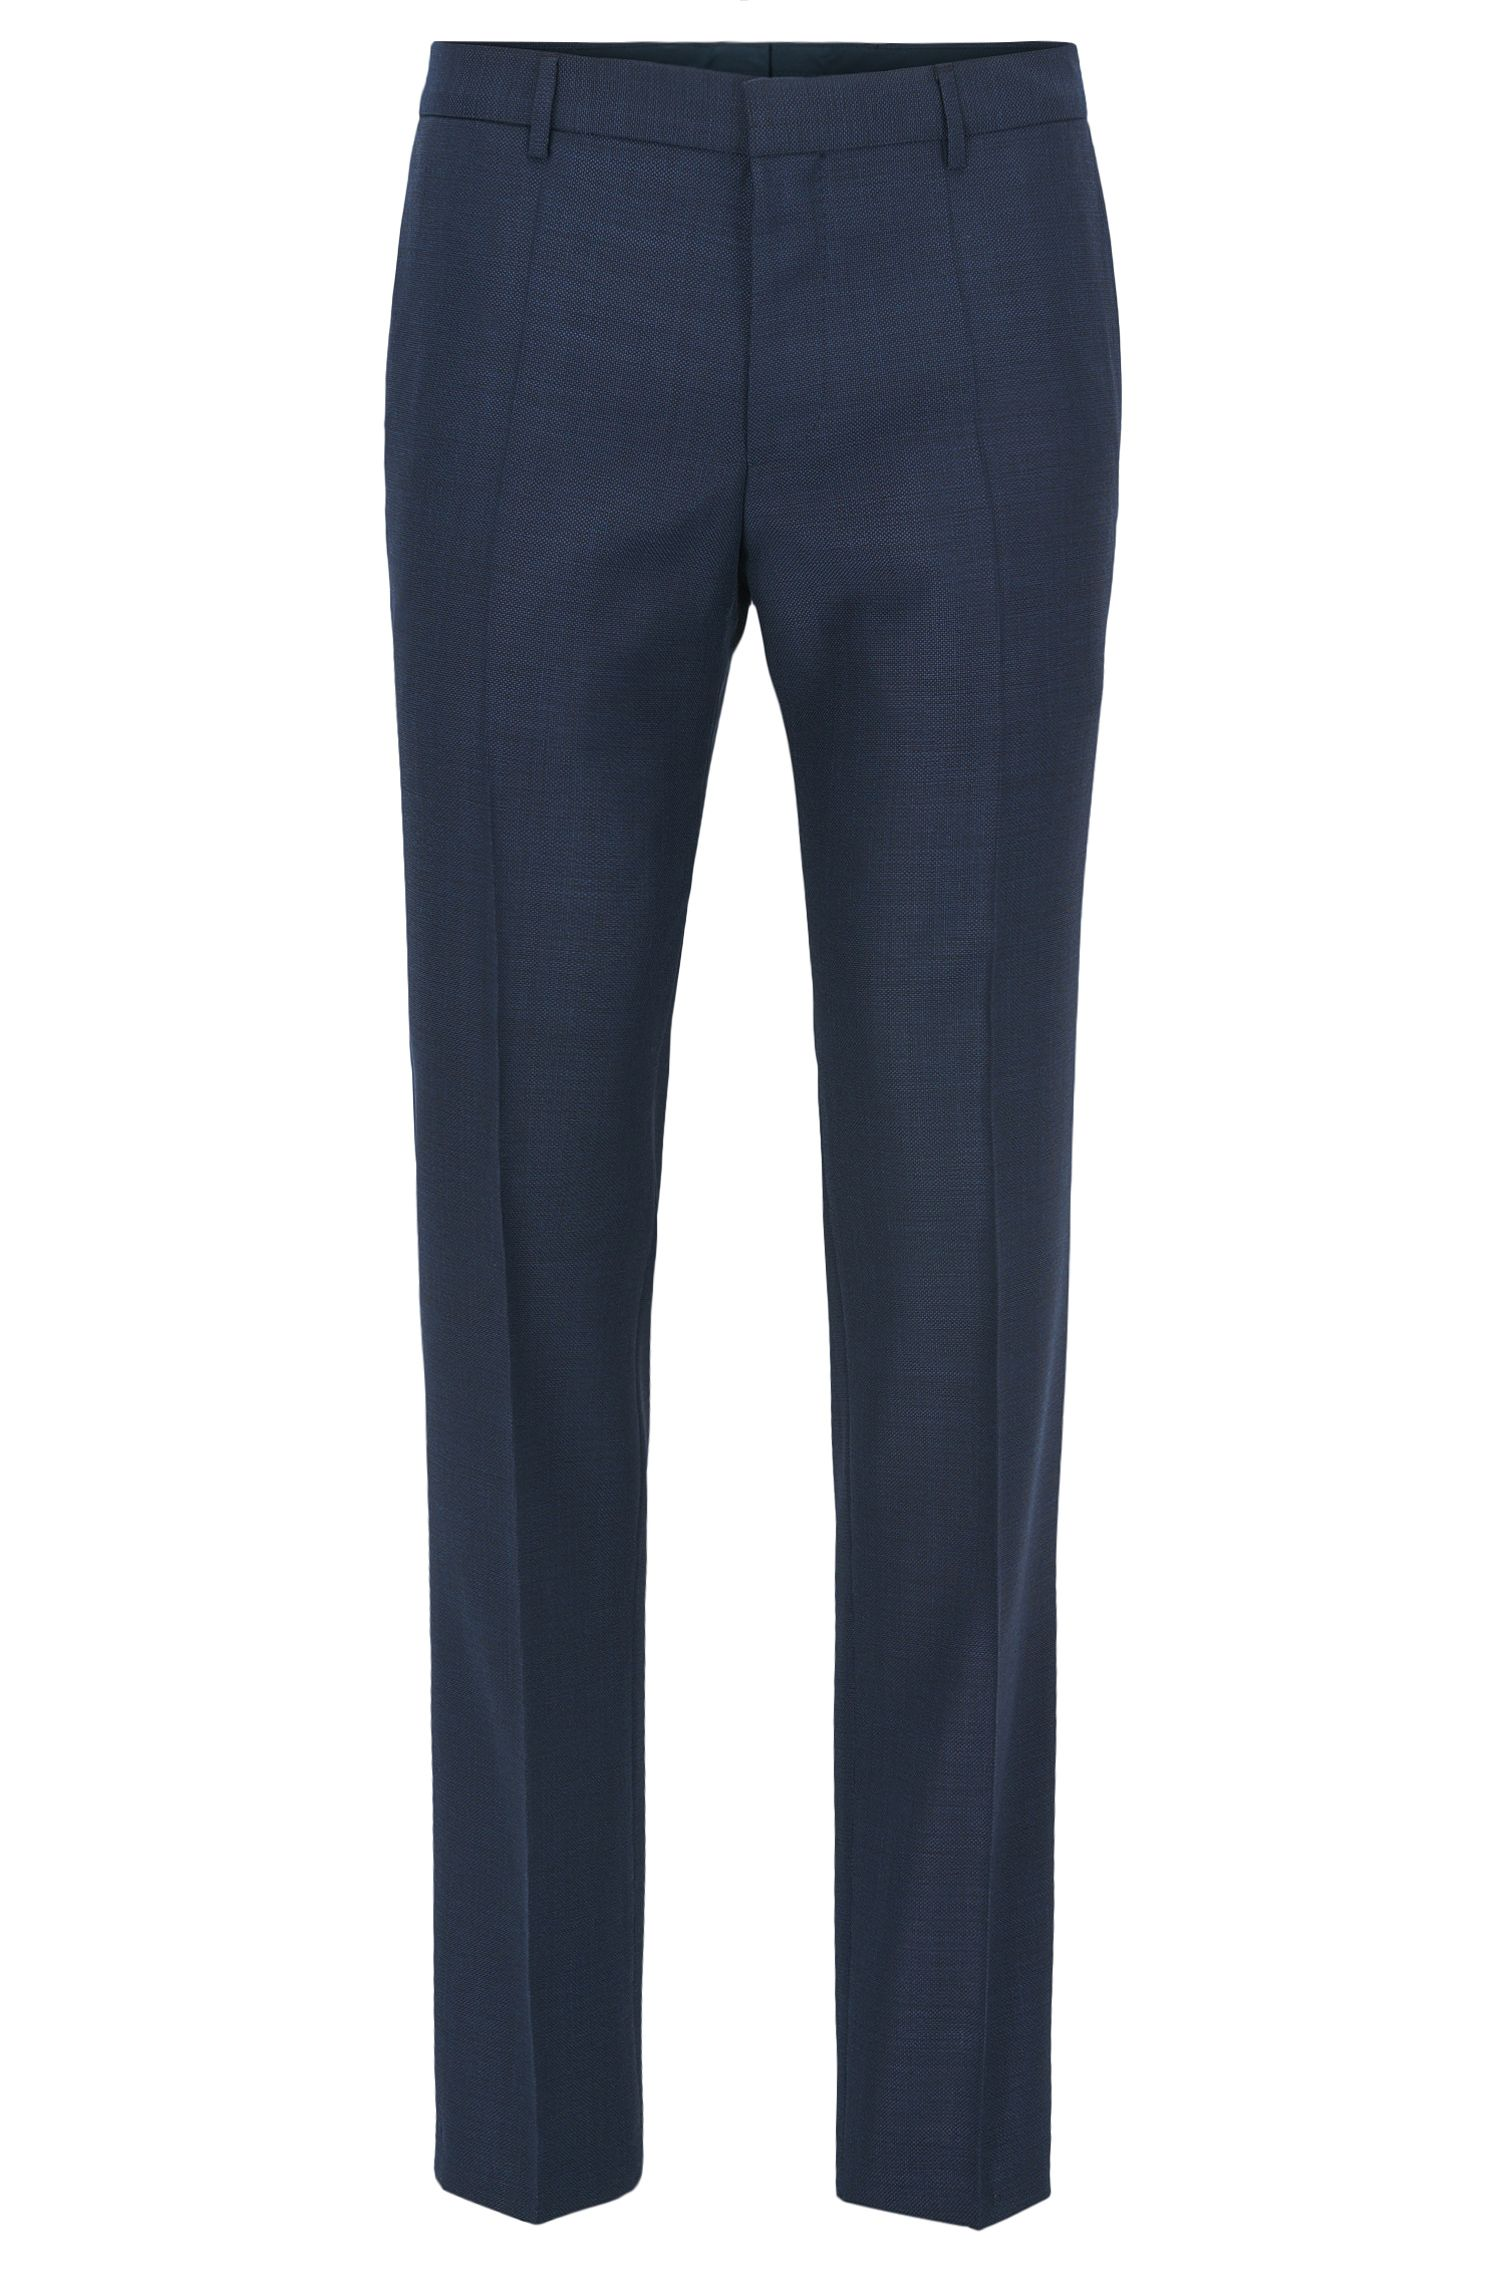 Piped Virgin Wool Dress Pant, Slim Fit | Blake